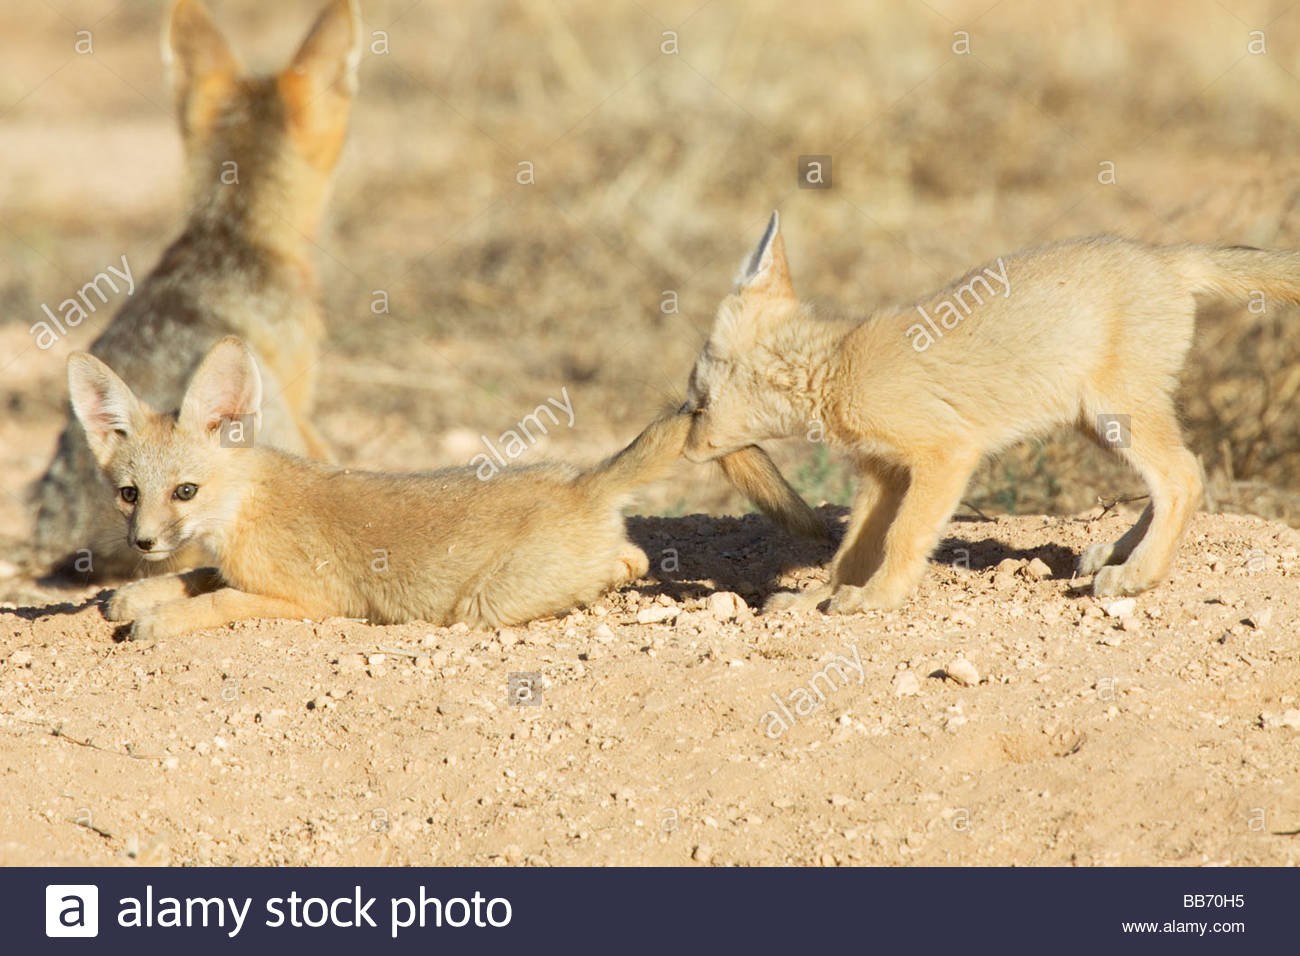 kit-foxes-vulpes-macrotis-pups-playing-biting-tail-BB70H5.jpg